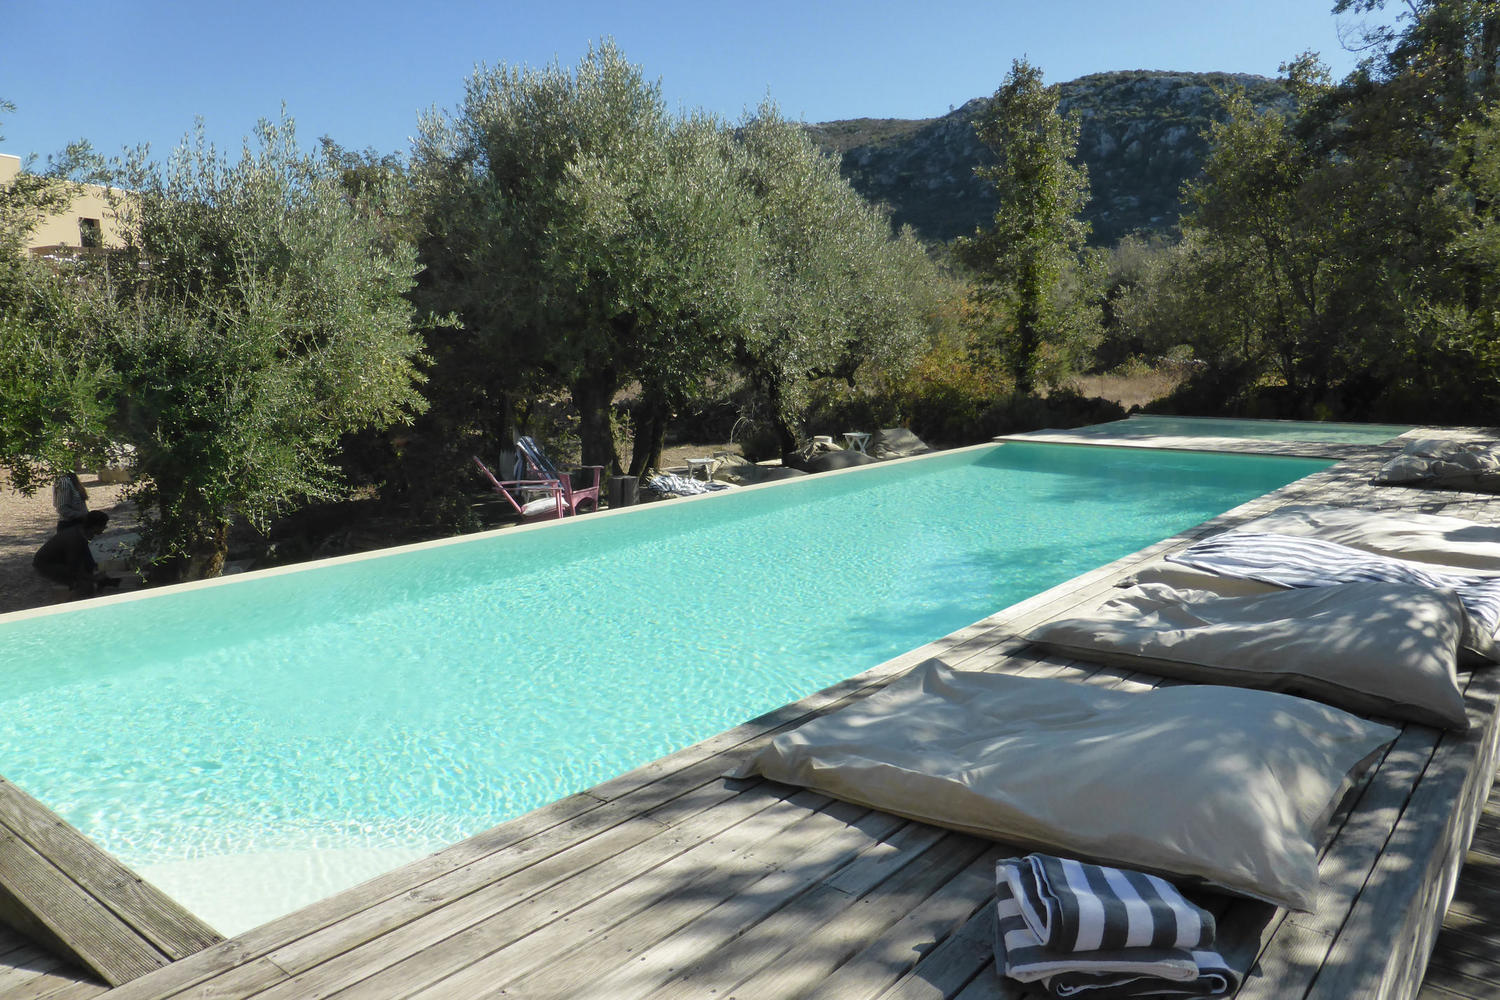 portugal-central-alvados-cooking-and-nature-hotel-pool